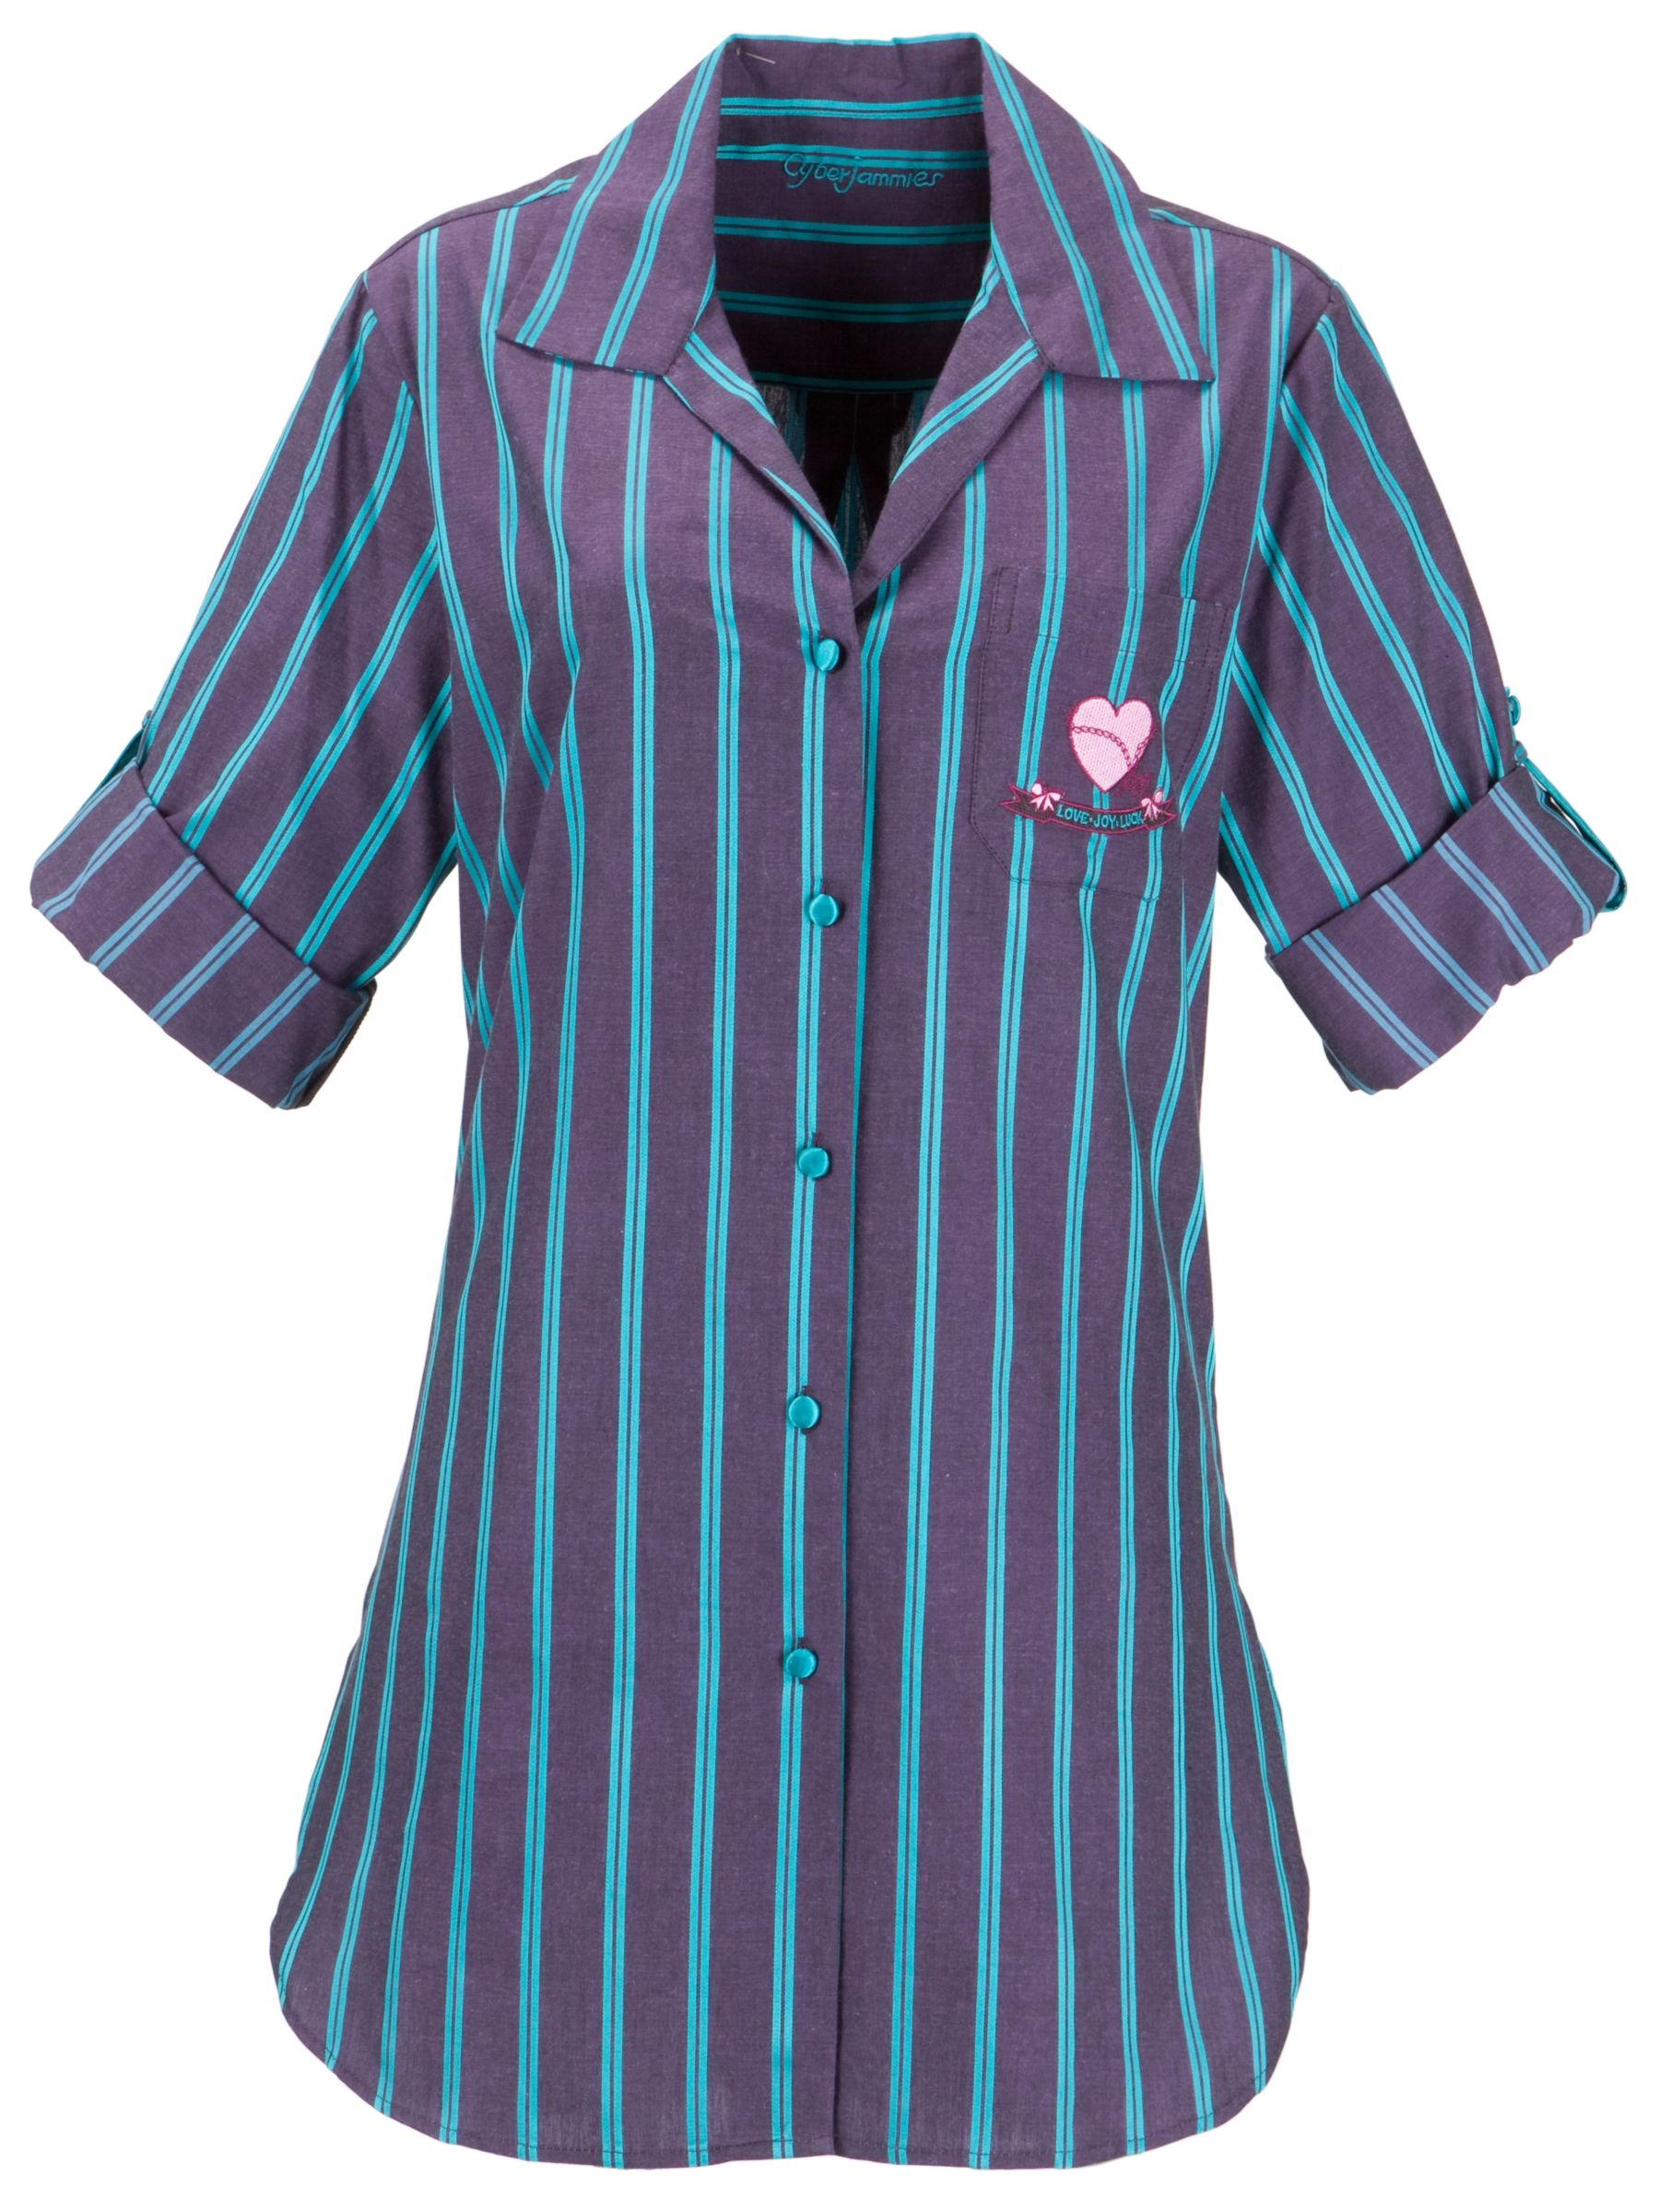 Cyberjammies Paradise Heather Nightshirt, Purple Stripe